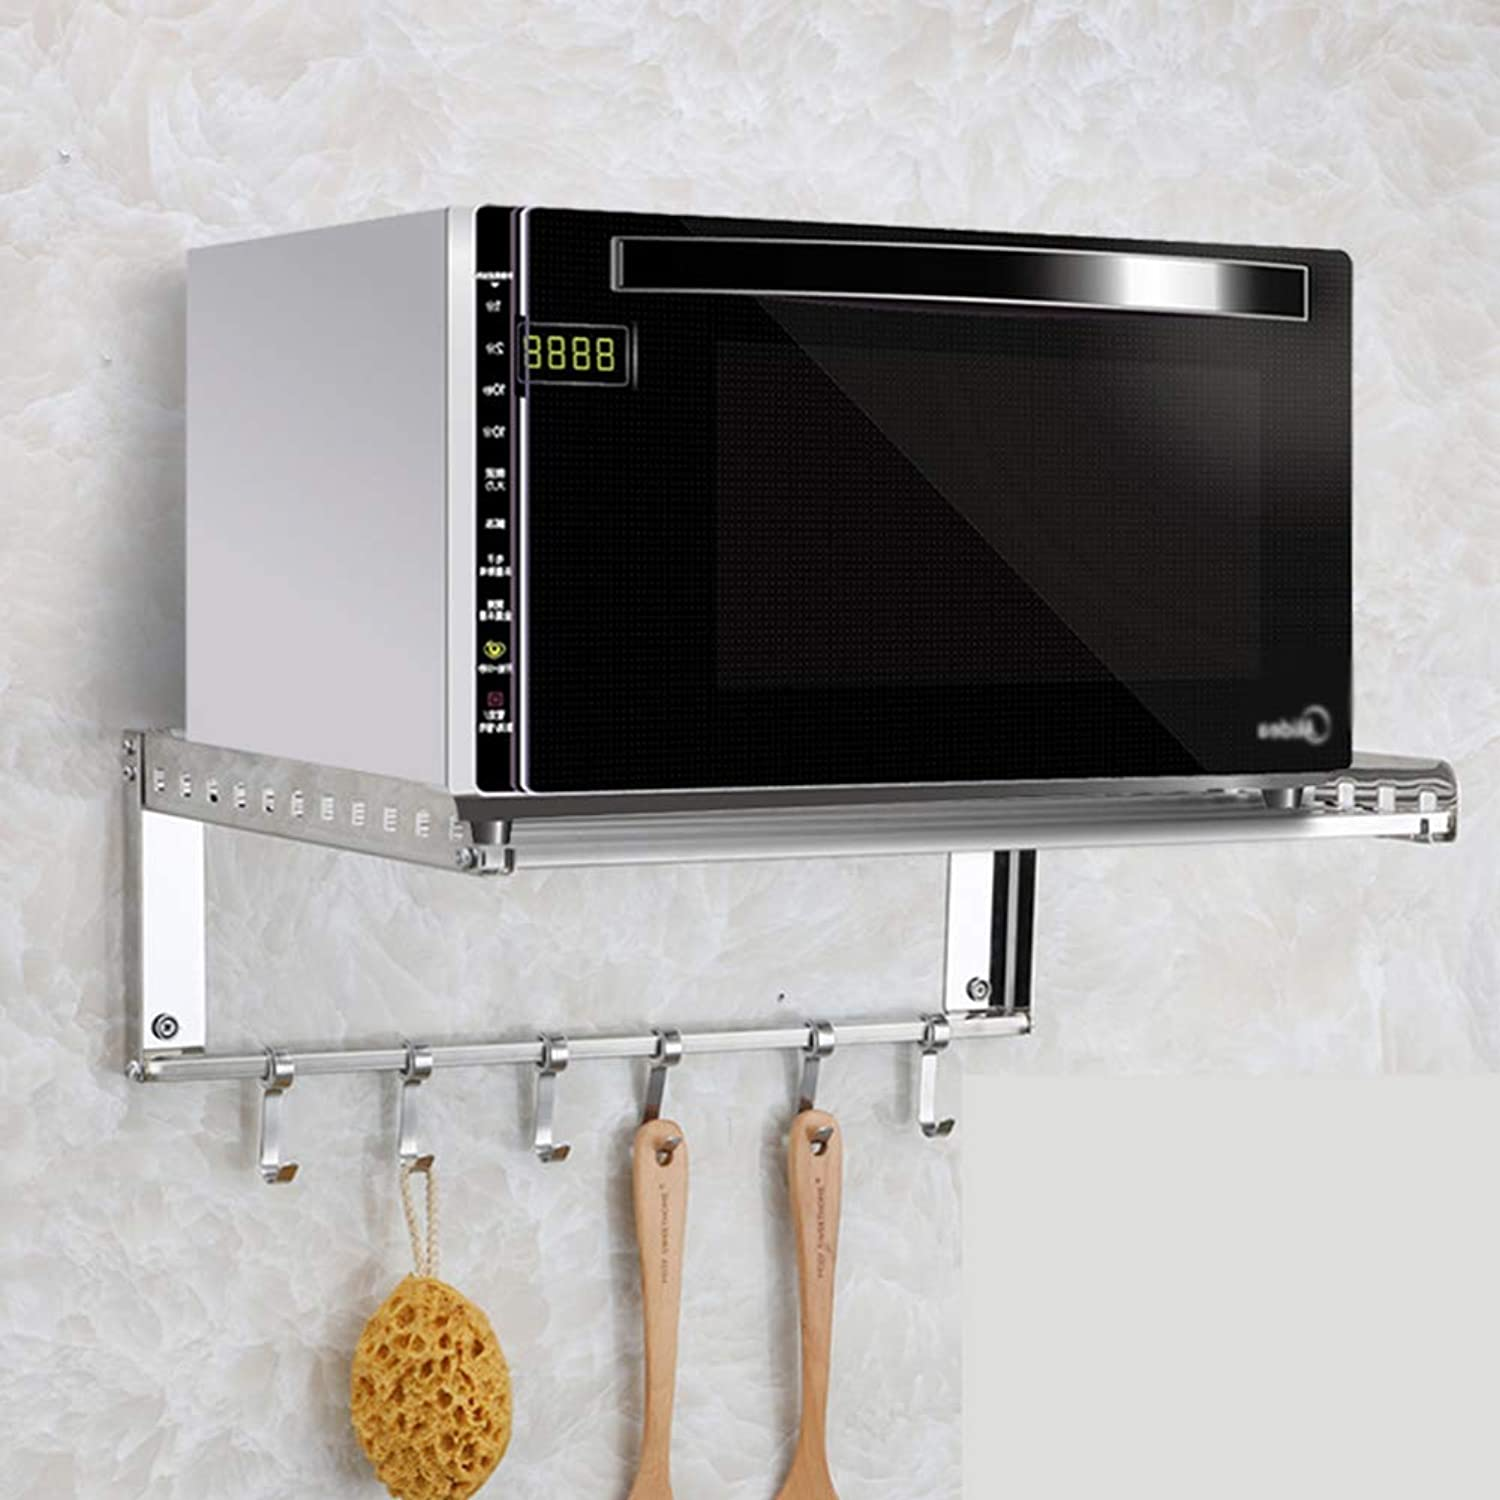 Wall Mounted Kitchen Microwave Oven Rack Stainless Steel Bathroom Kitchen Shelf Organizer with S-Shape Hooks